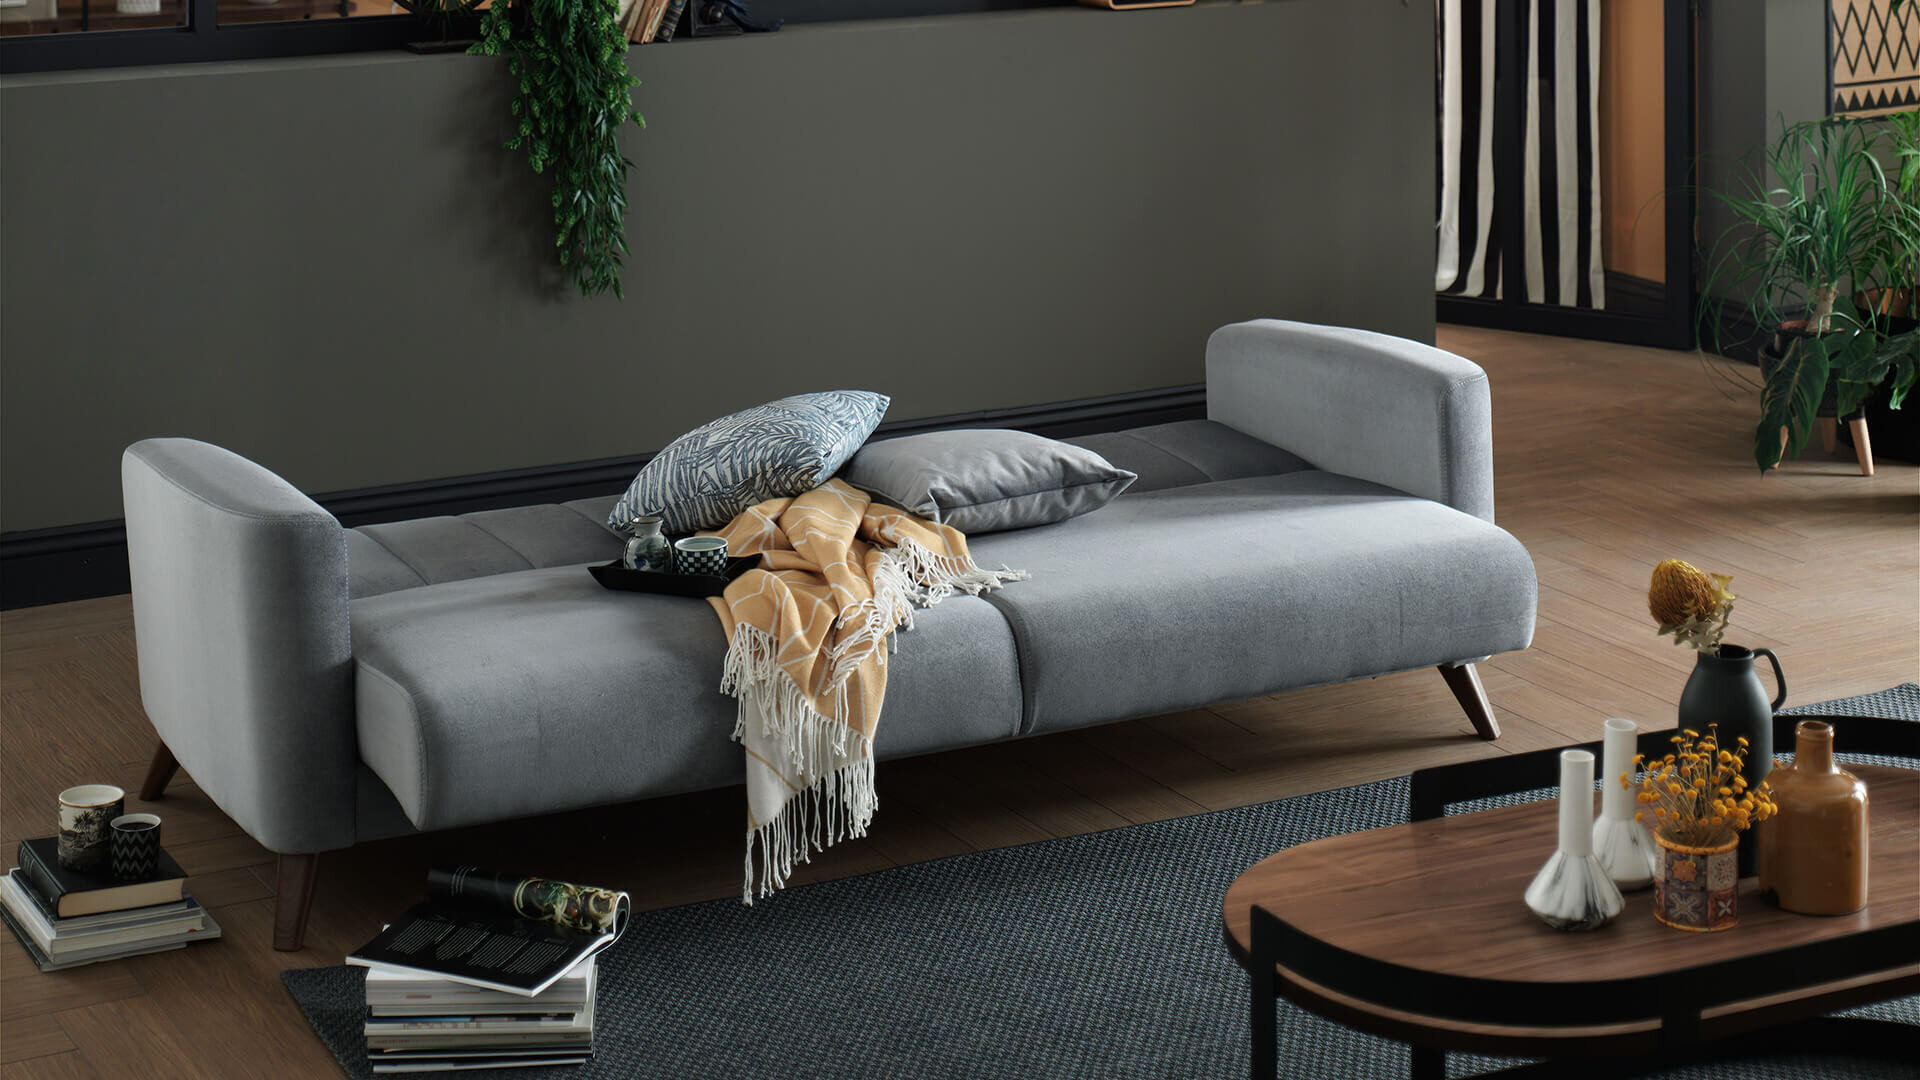 Loft Three Seater Sleeper Storage Sofa